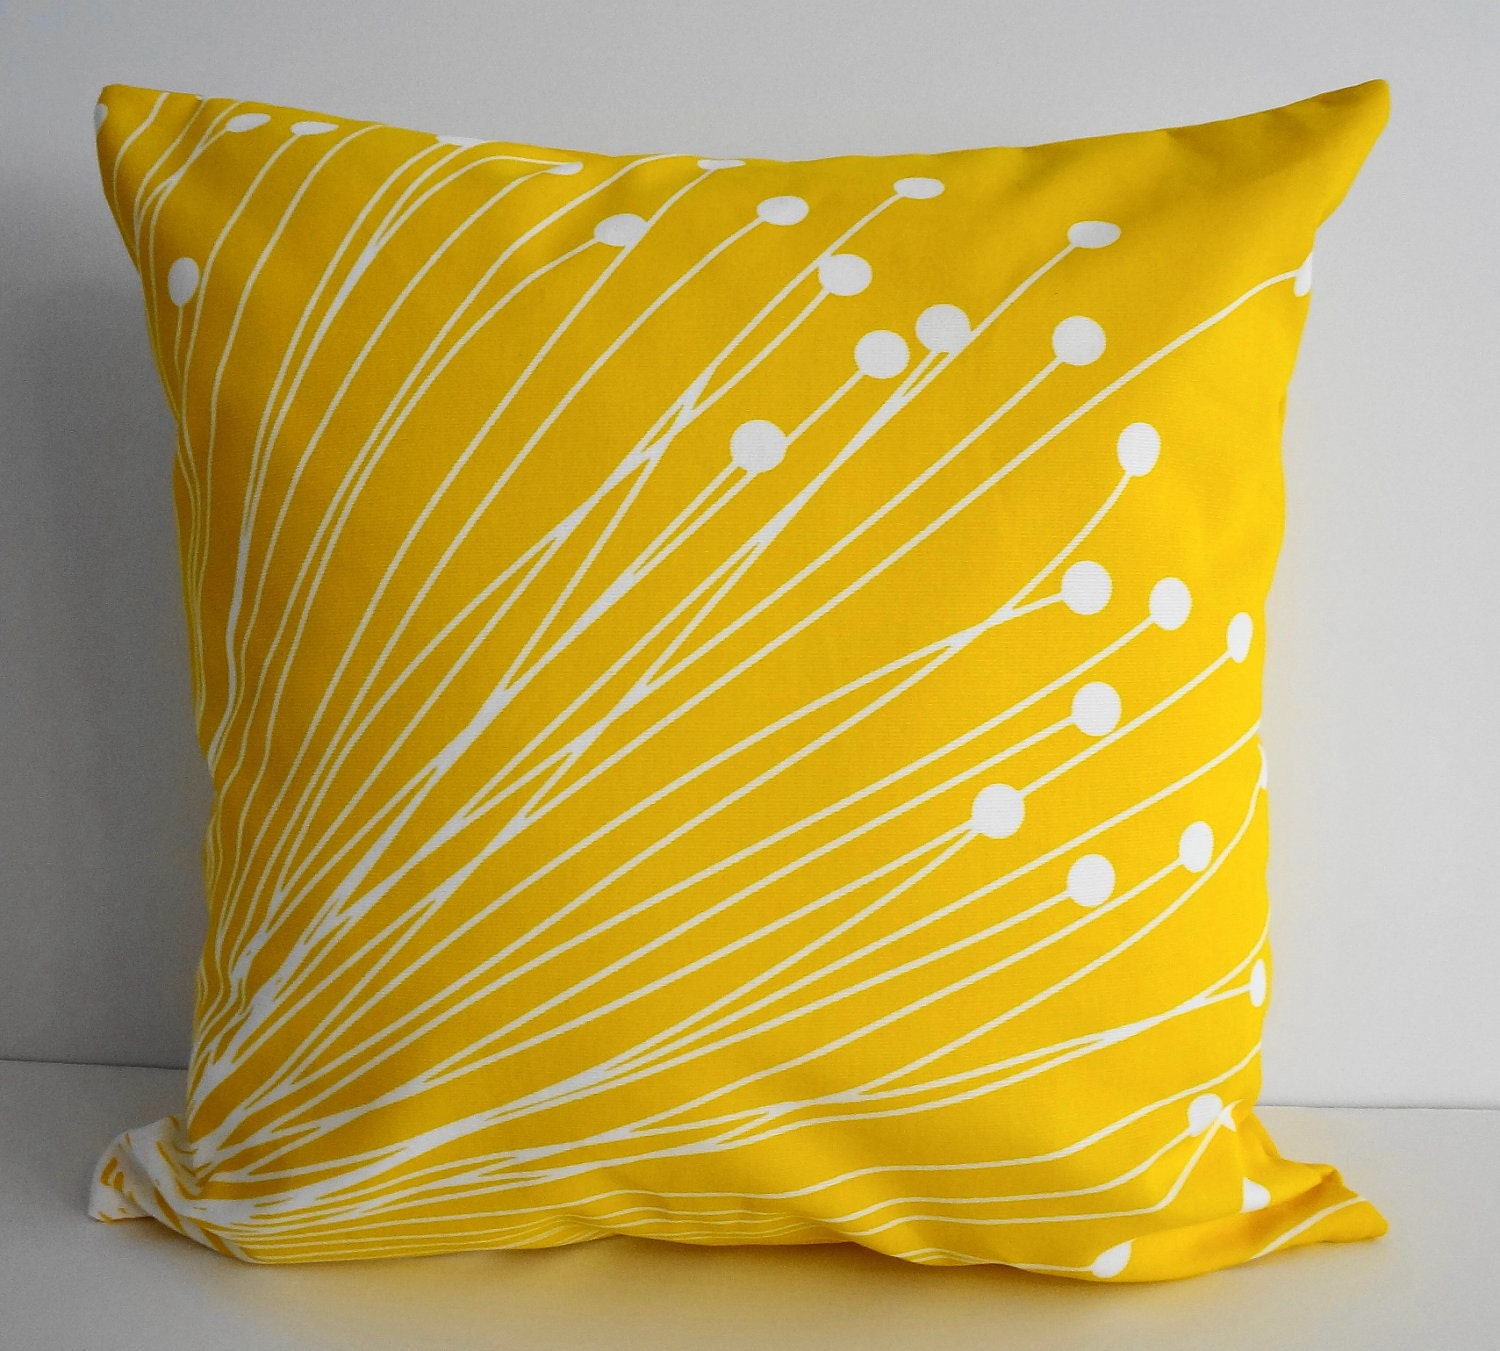 Yellow starburst pillow covers decorative throw by pillows4fun for Decor pillows